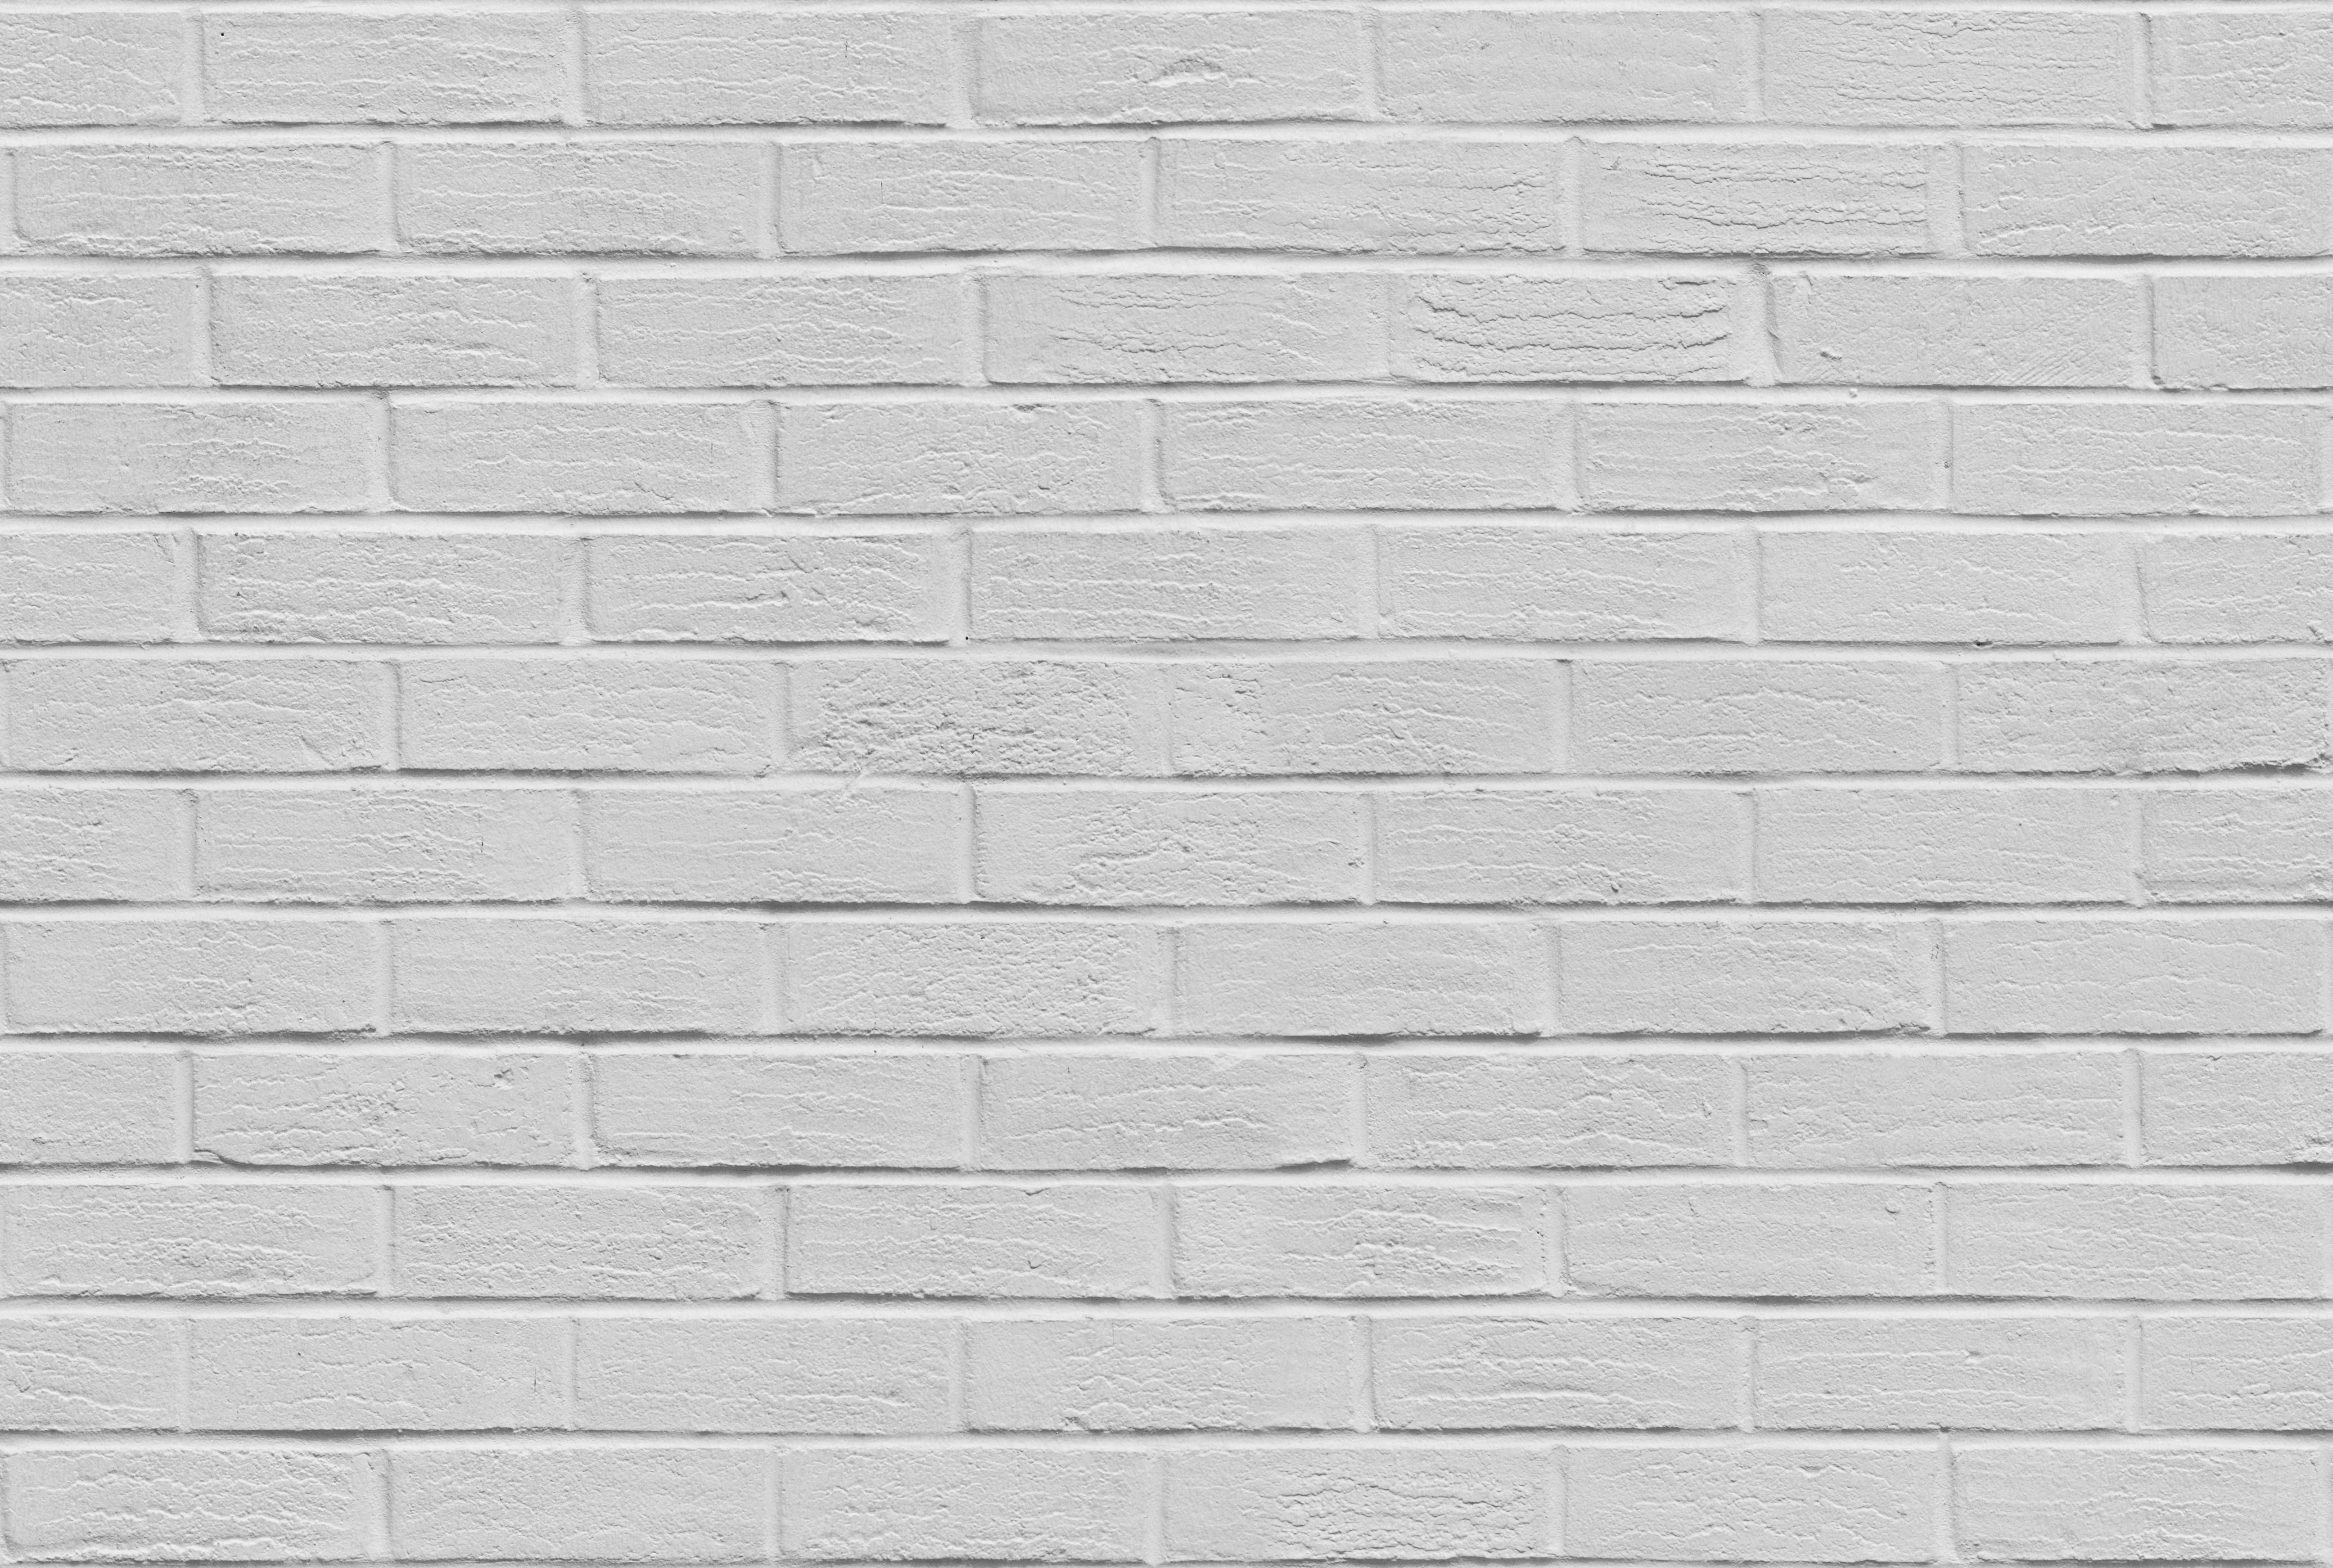 15 Free White Brick Texture Designs White Brick Wallpaper Brick Texture Brick Wall Wallpaper Hd